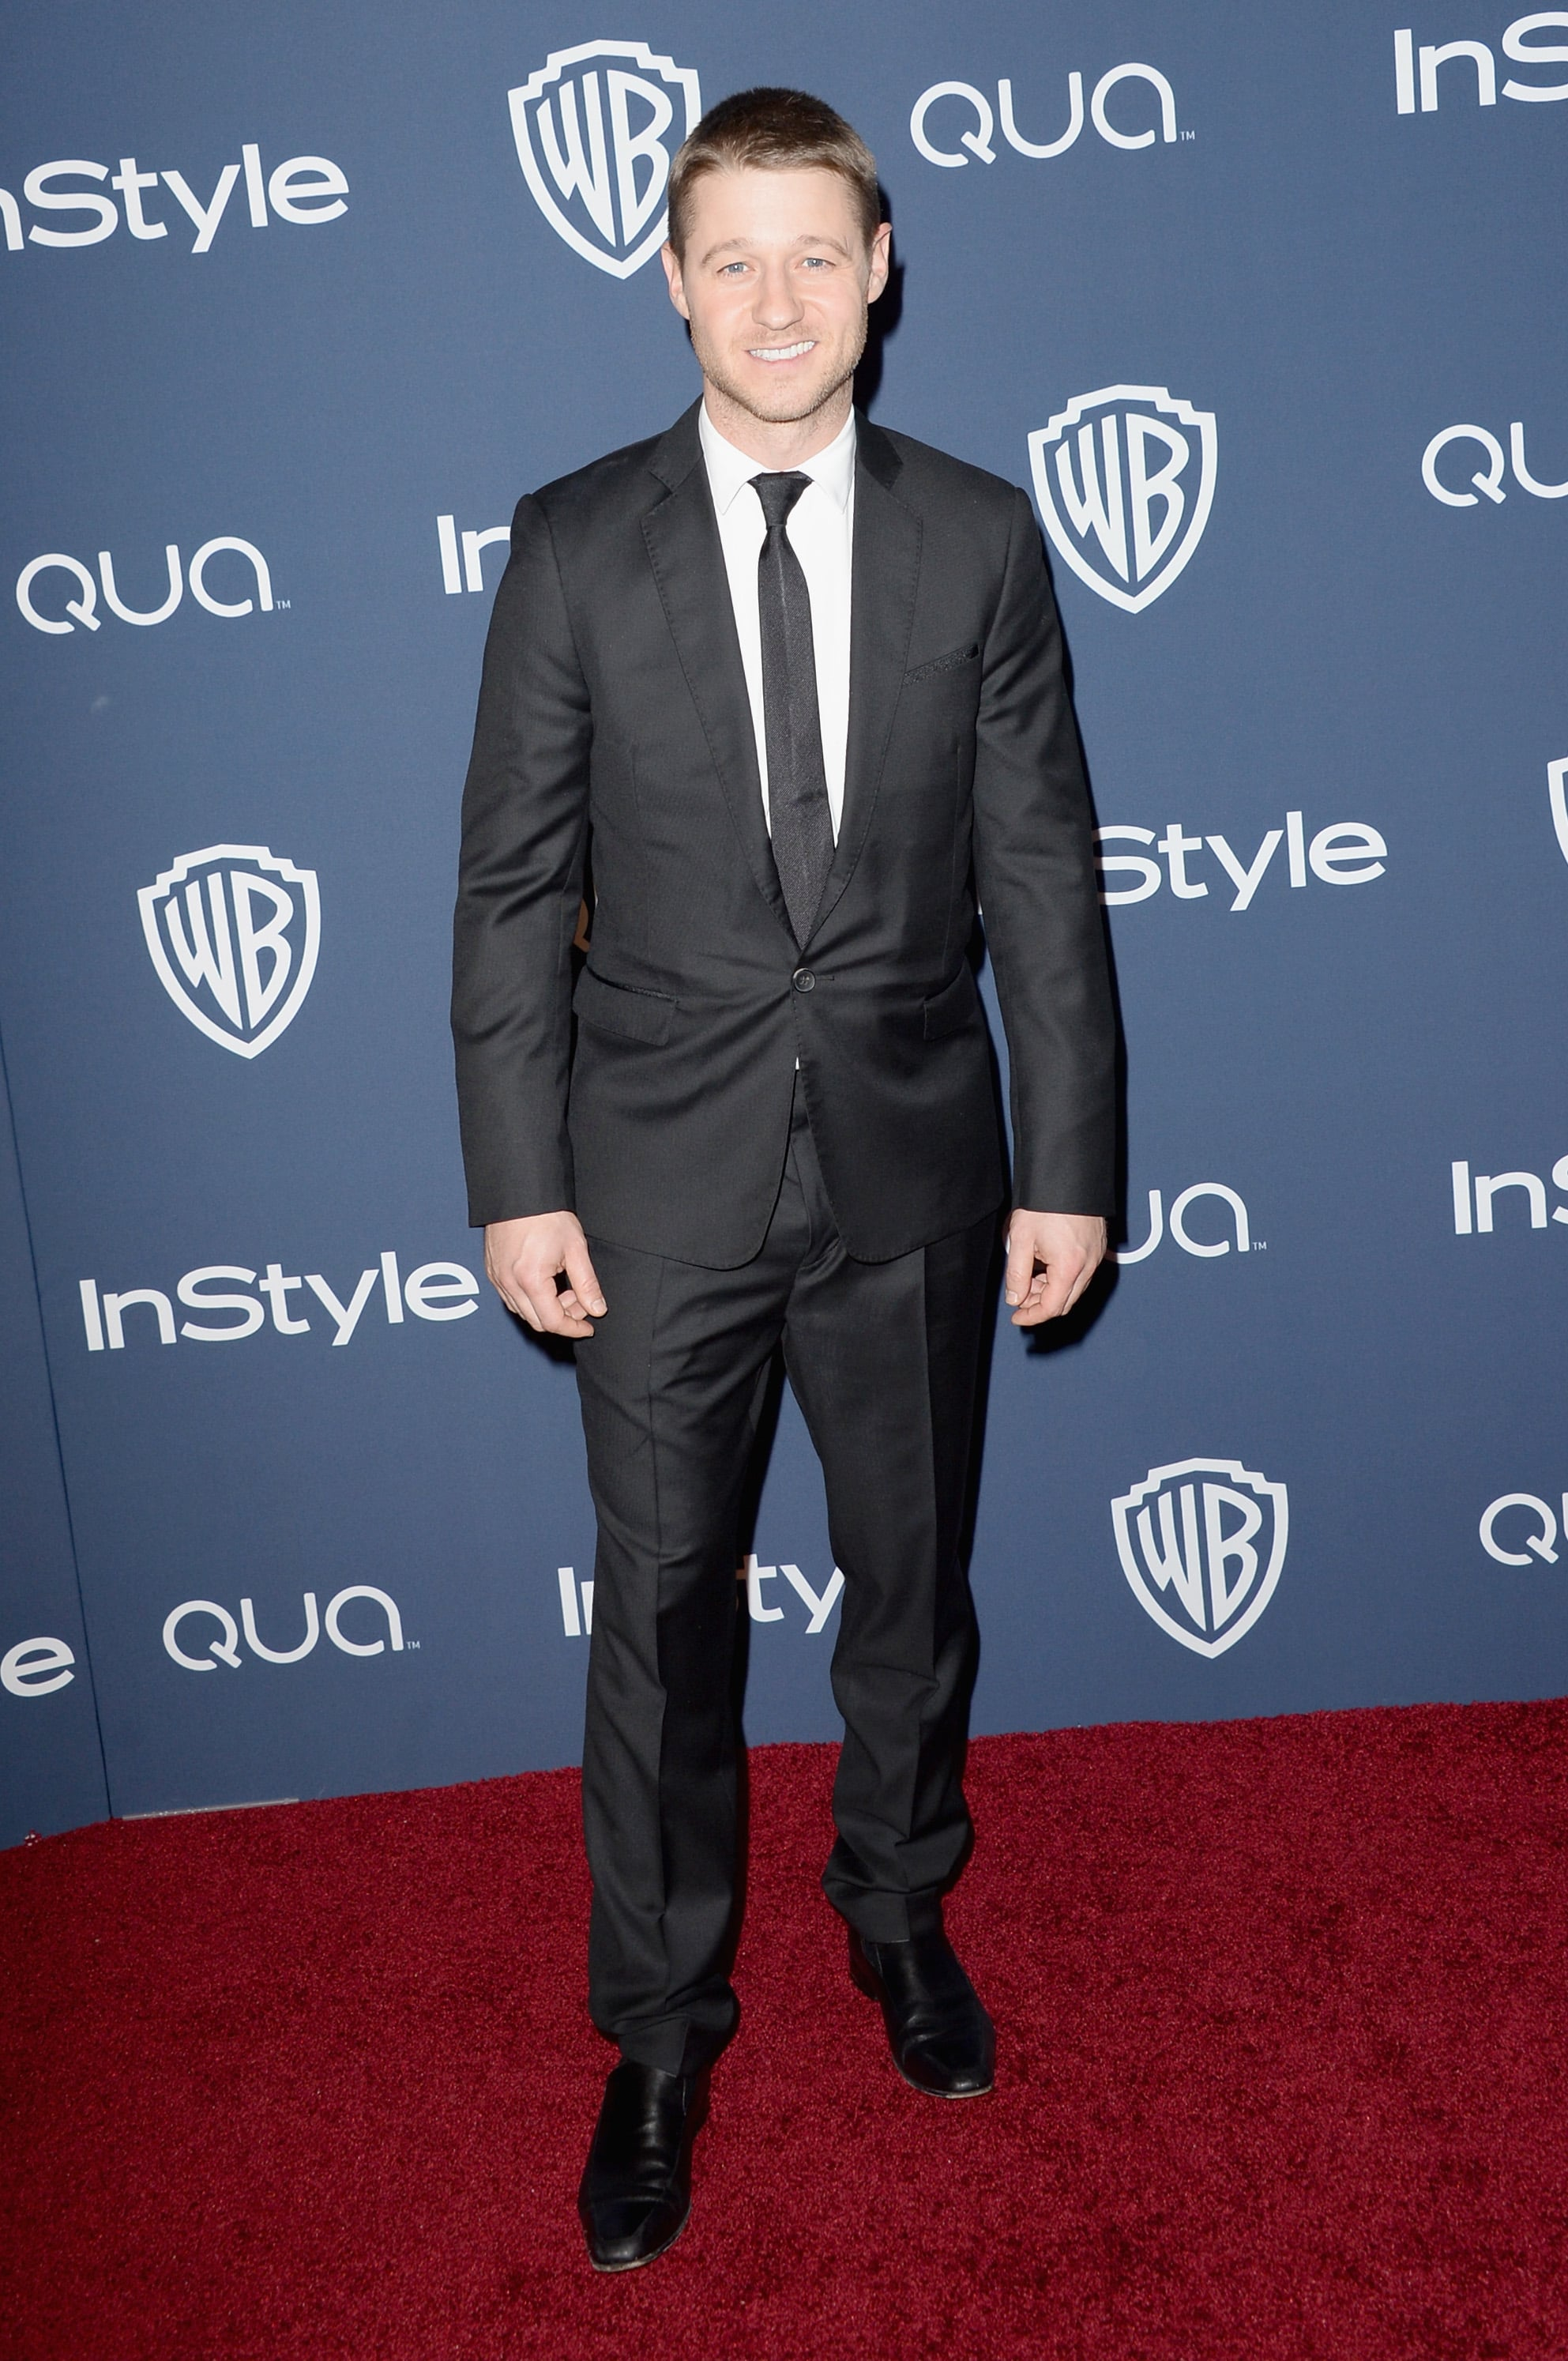 Ben McKenzie was all smiles while posing for photos.